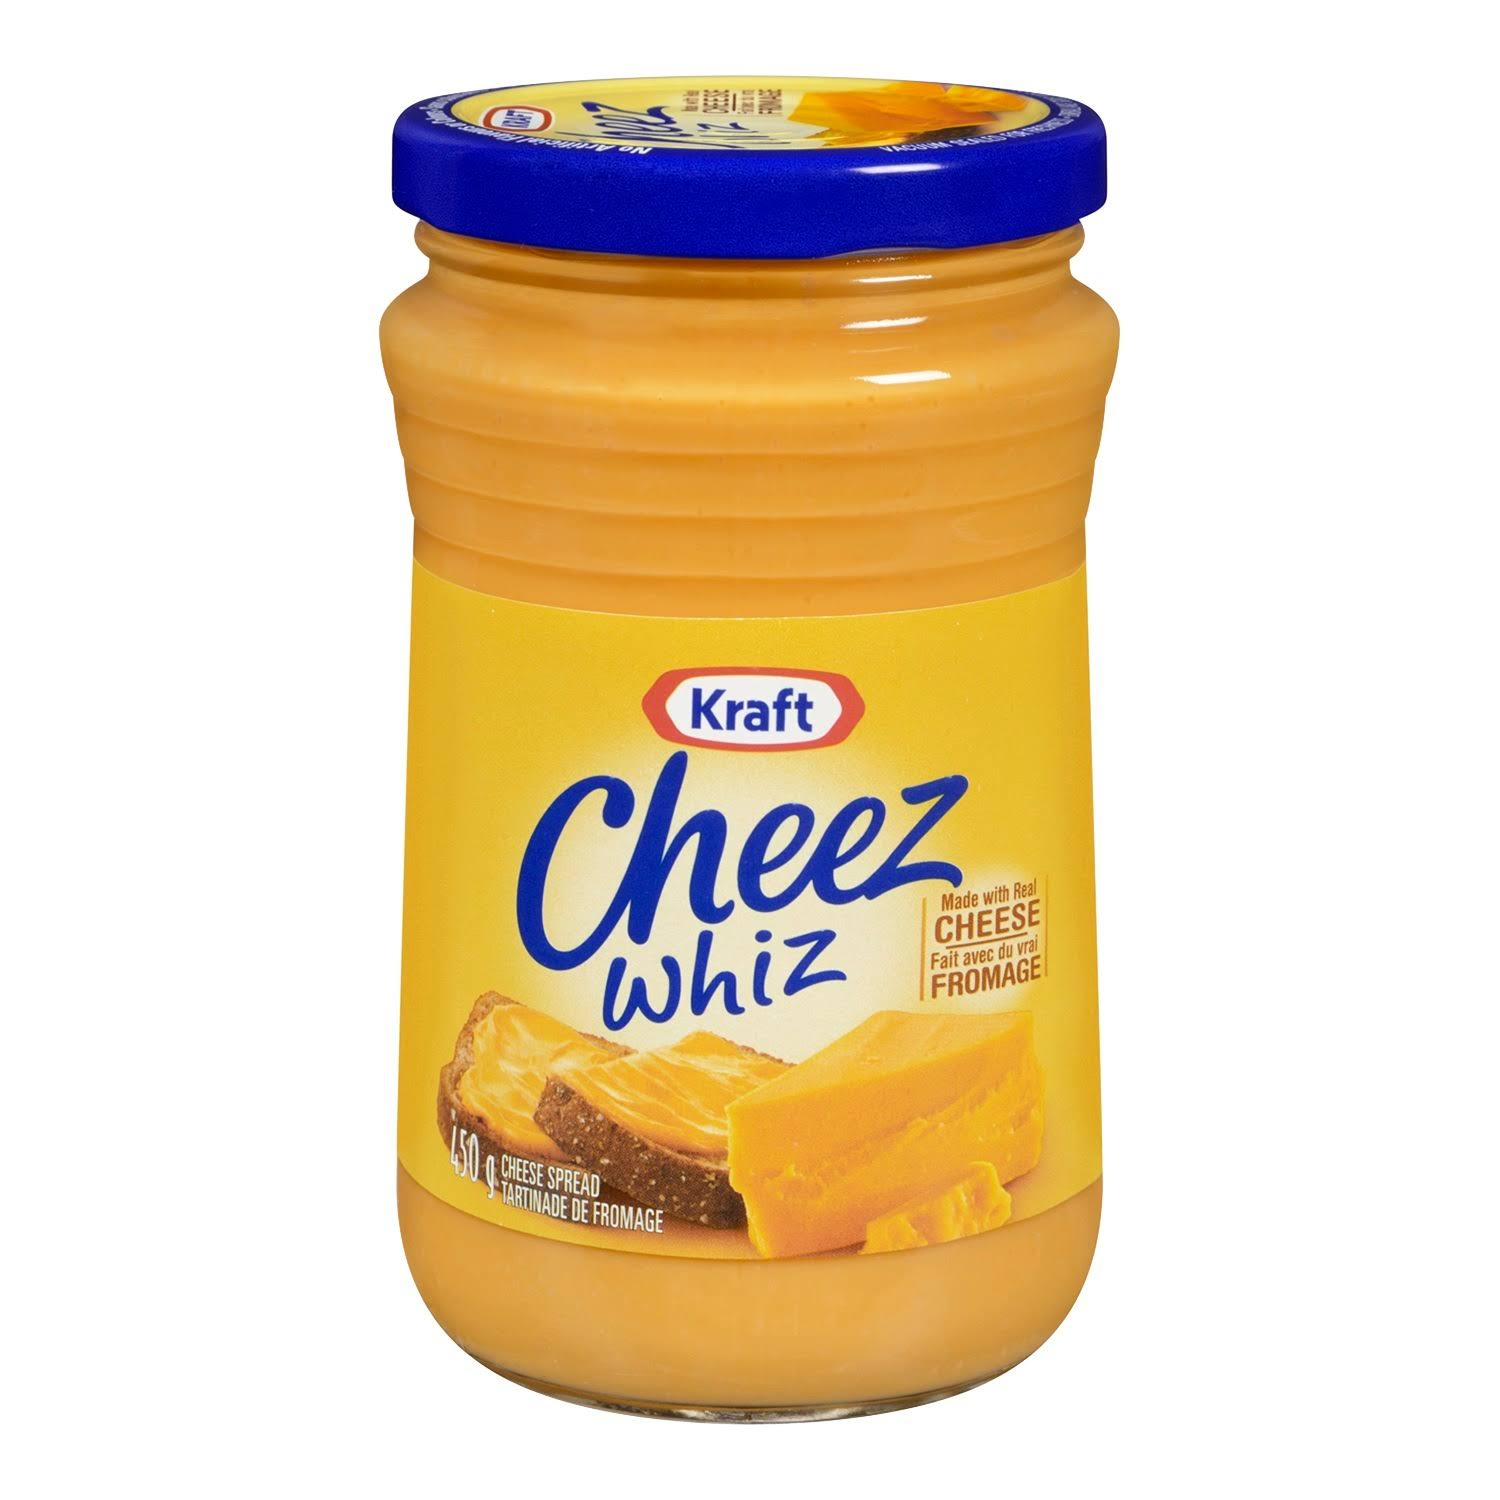 Kraft Cheez Whiz 450 Grams Each Made with Real Cheese - Imported from